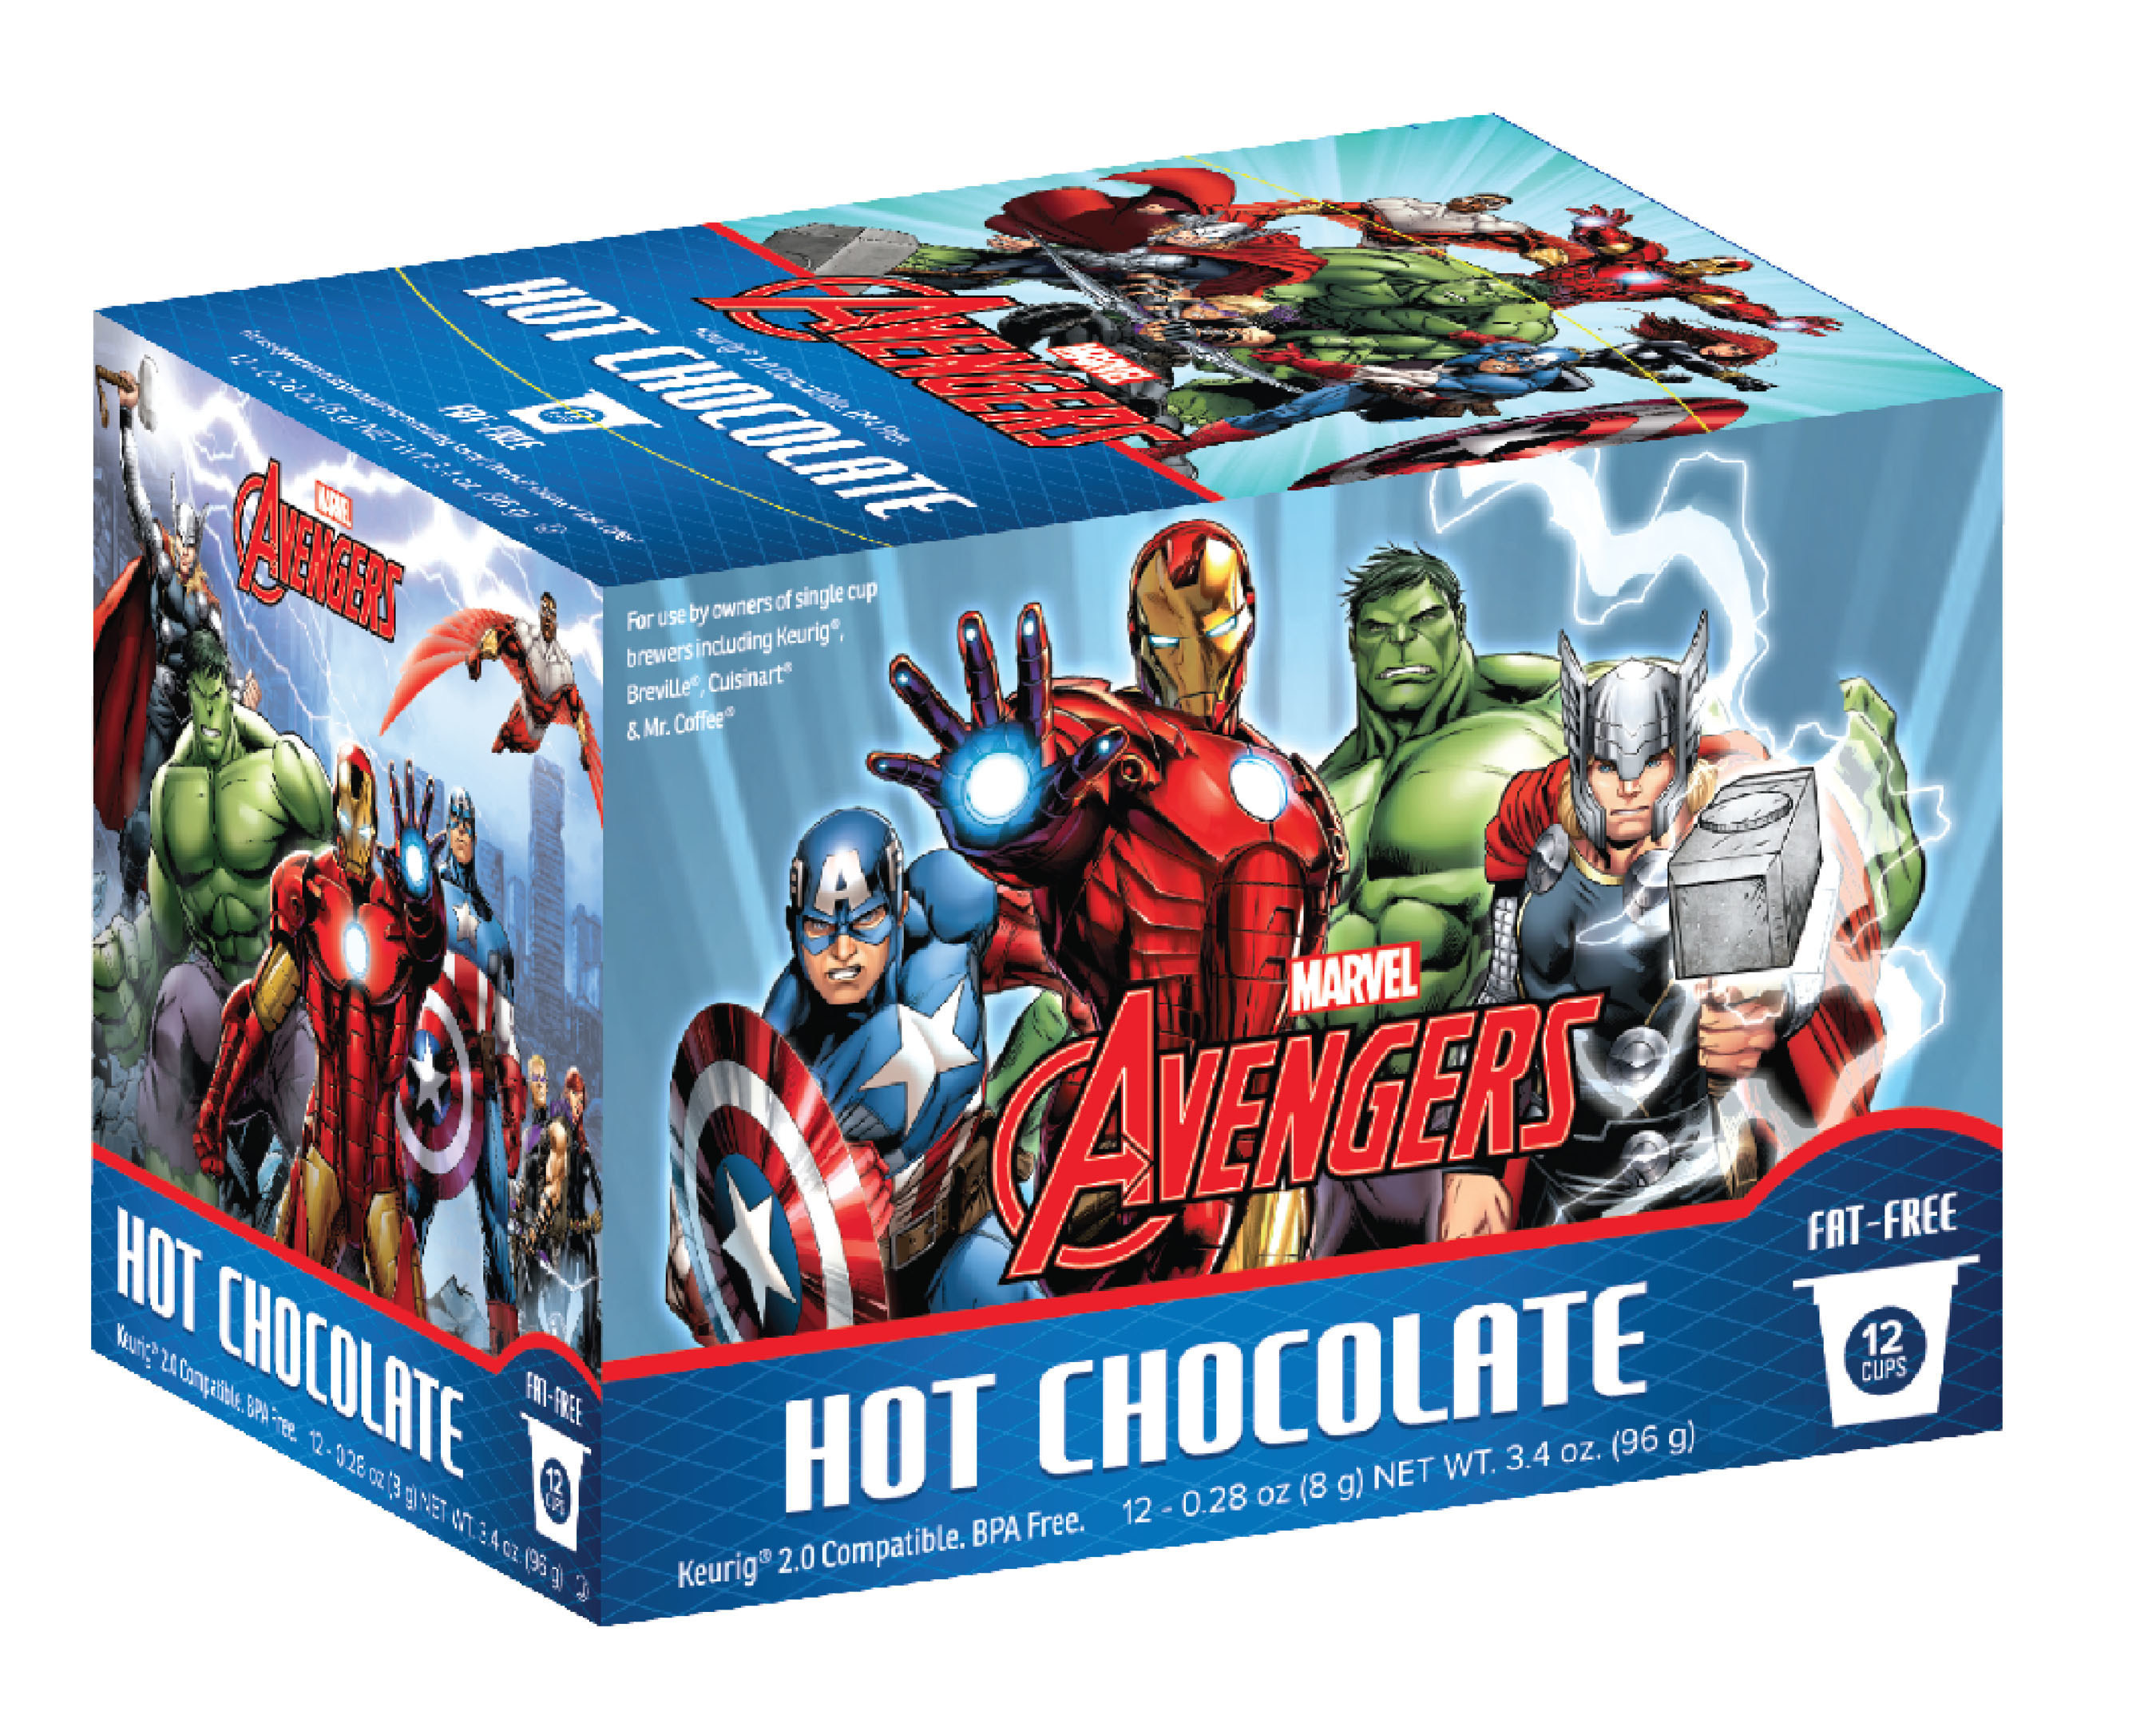 Marvel Comic Coffee and Marvel's Avengers Hot Chocolate will be available in retail outlets nationwide later this year. The cups produced will be 2.0 compatible, for use with the Keurig(R) system and similar coffeemakers. Both products will be on-hand at the at the upcoming New York Comic Con, the largest pop culture event on the East Coast, held October 8-11th at the Javits Center.